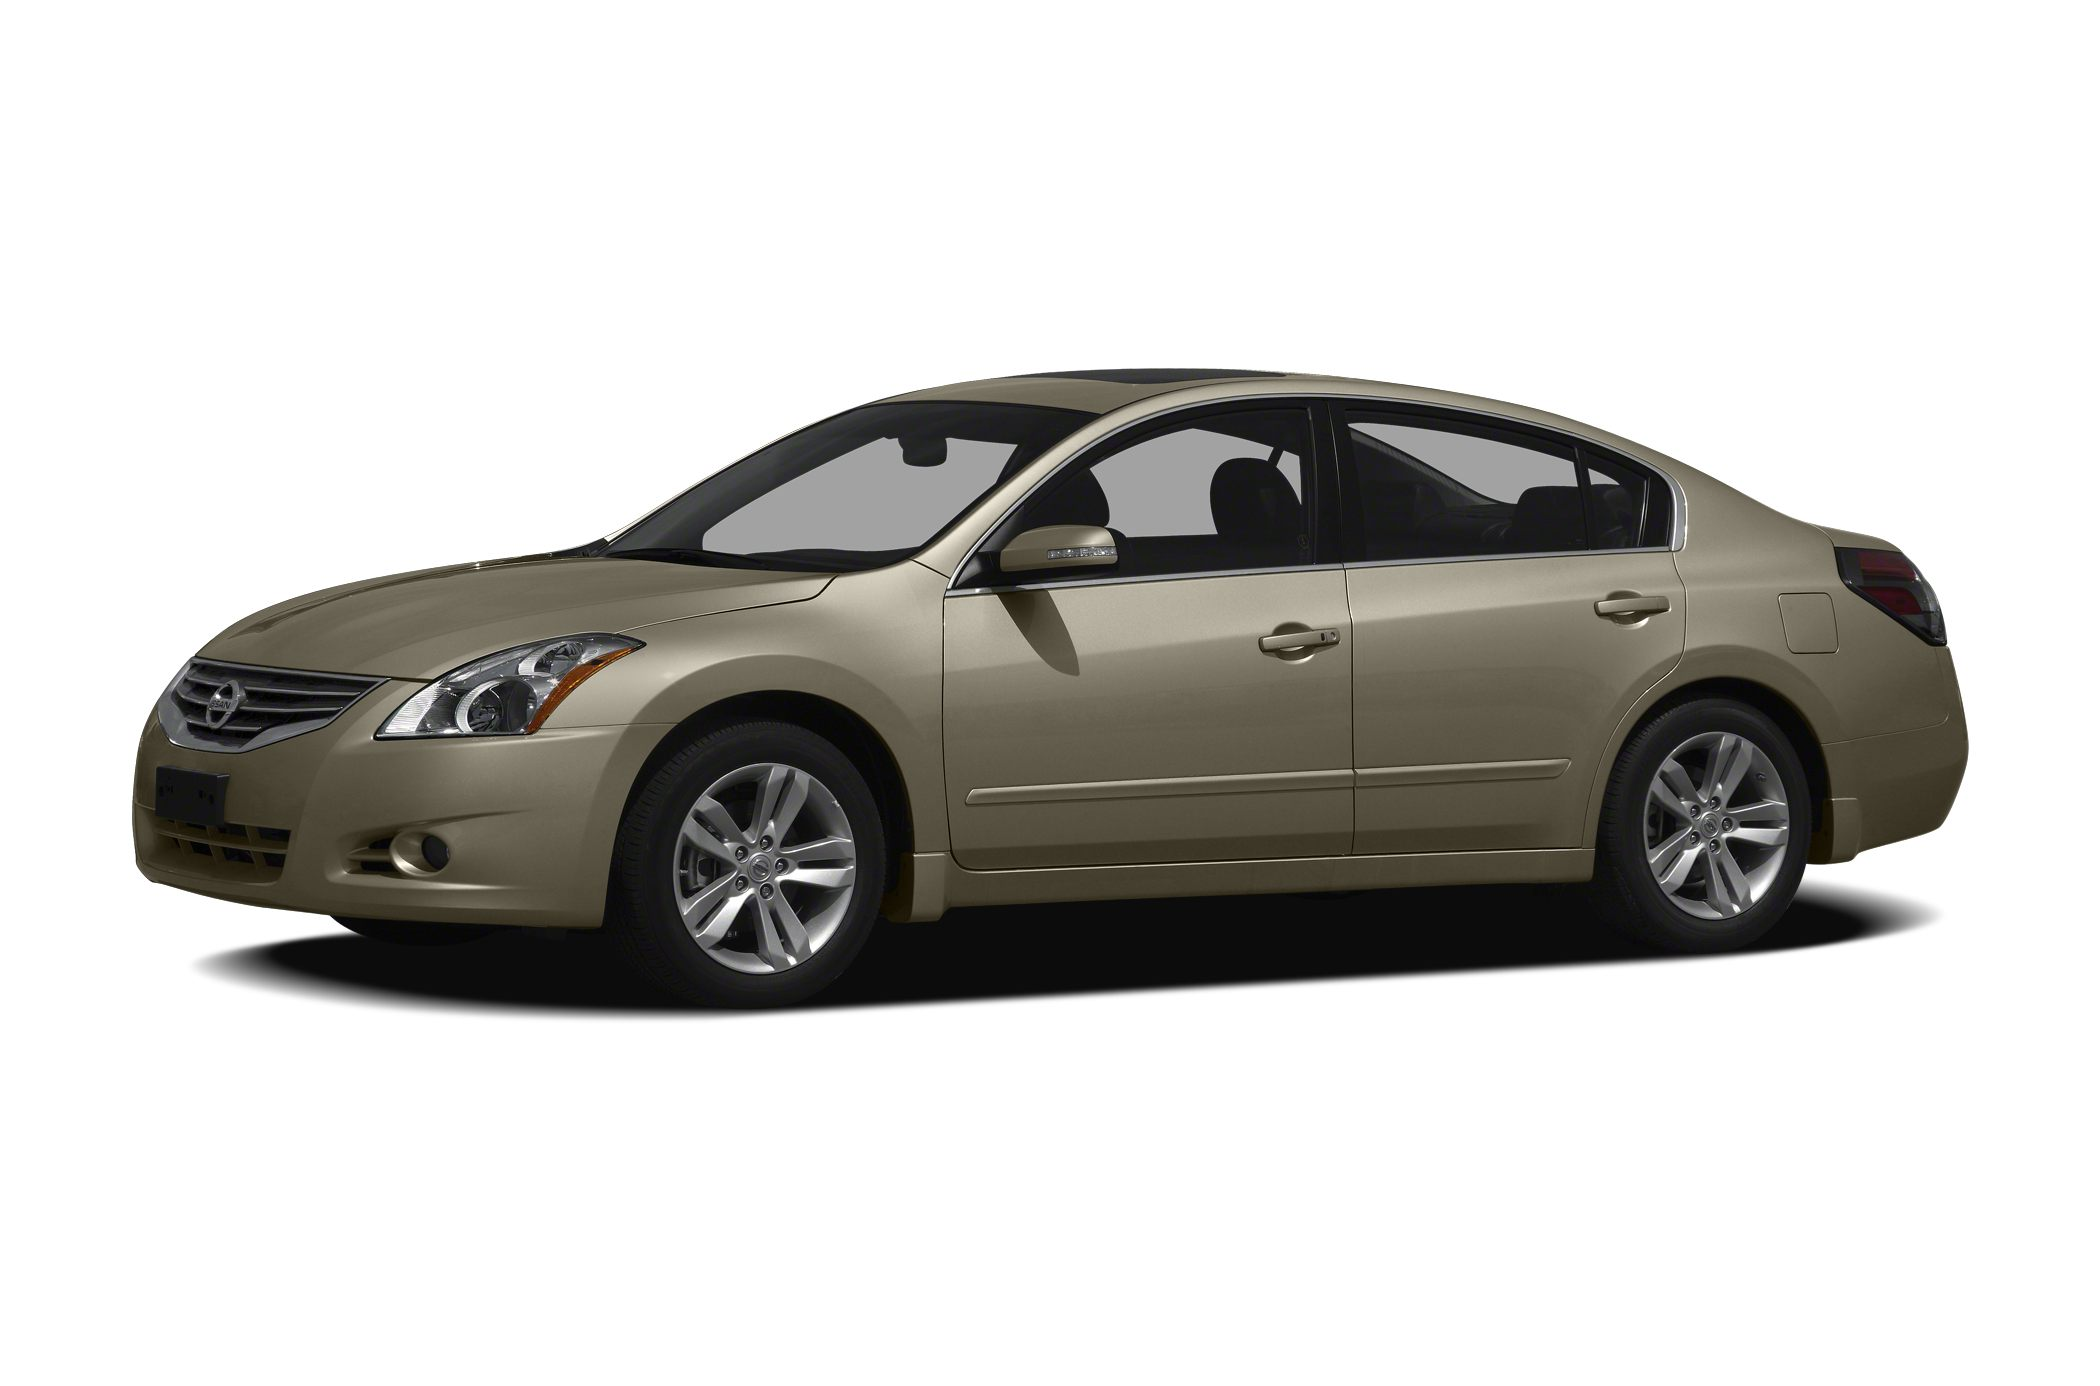 2012 Nissan Altima 3.5 SR Sedan for sale in Flemington for $20,990 with 8,892 miles